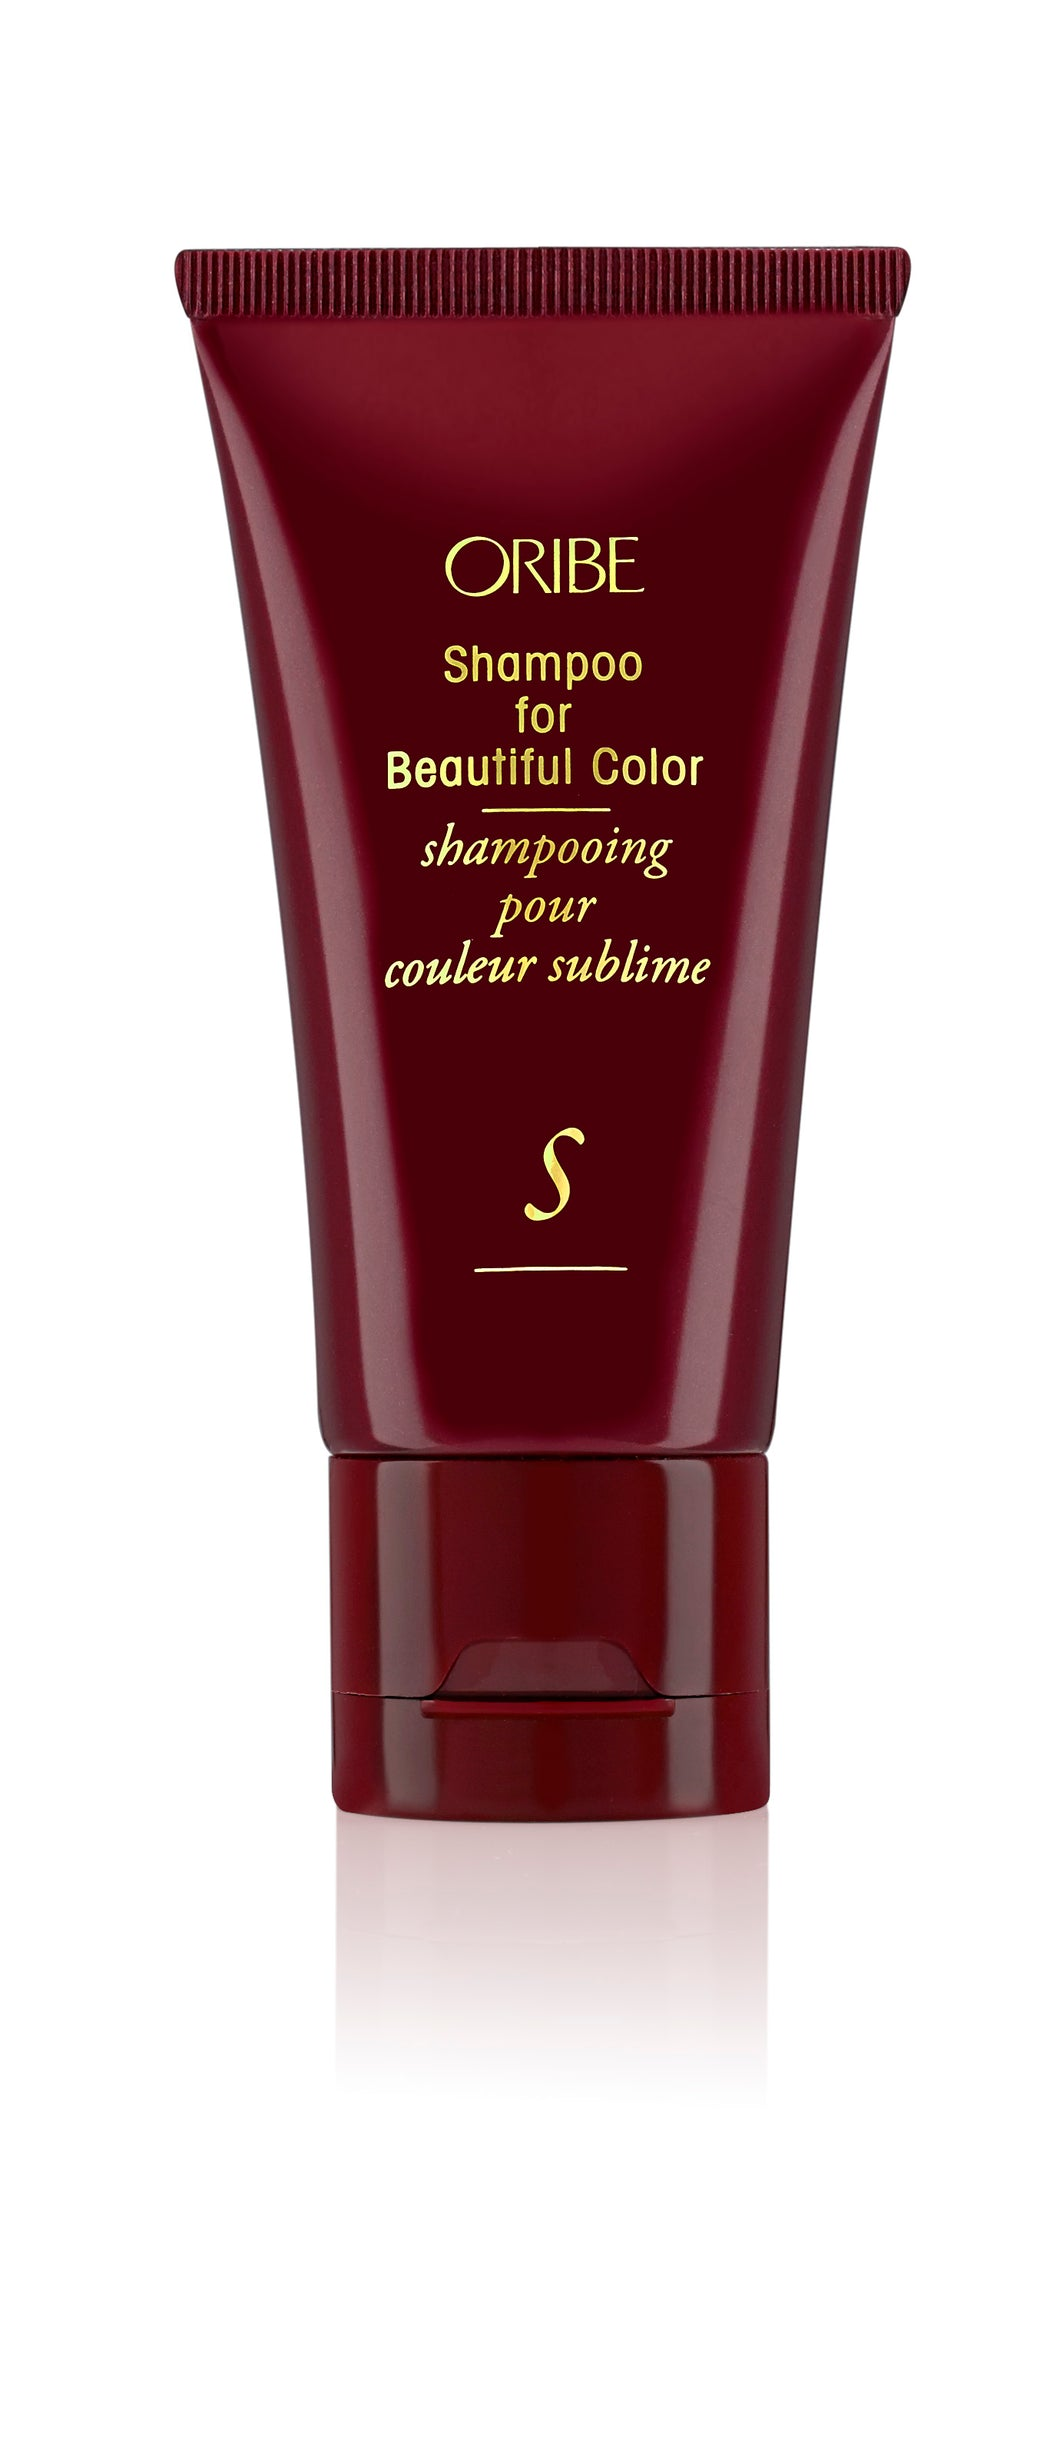 Shampoo for Beautiful Color